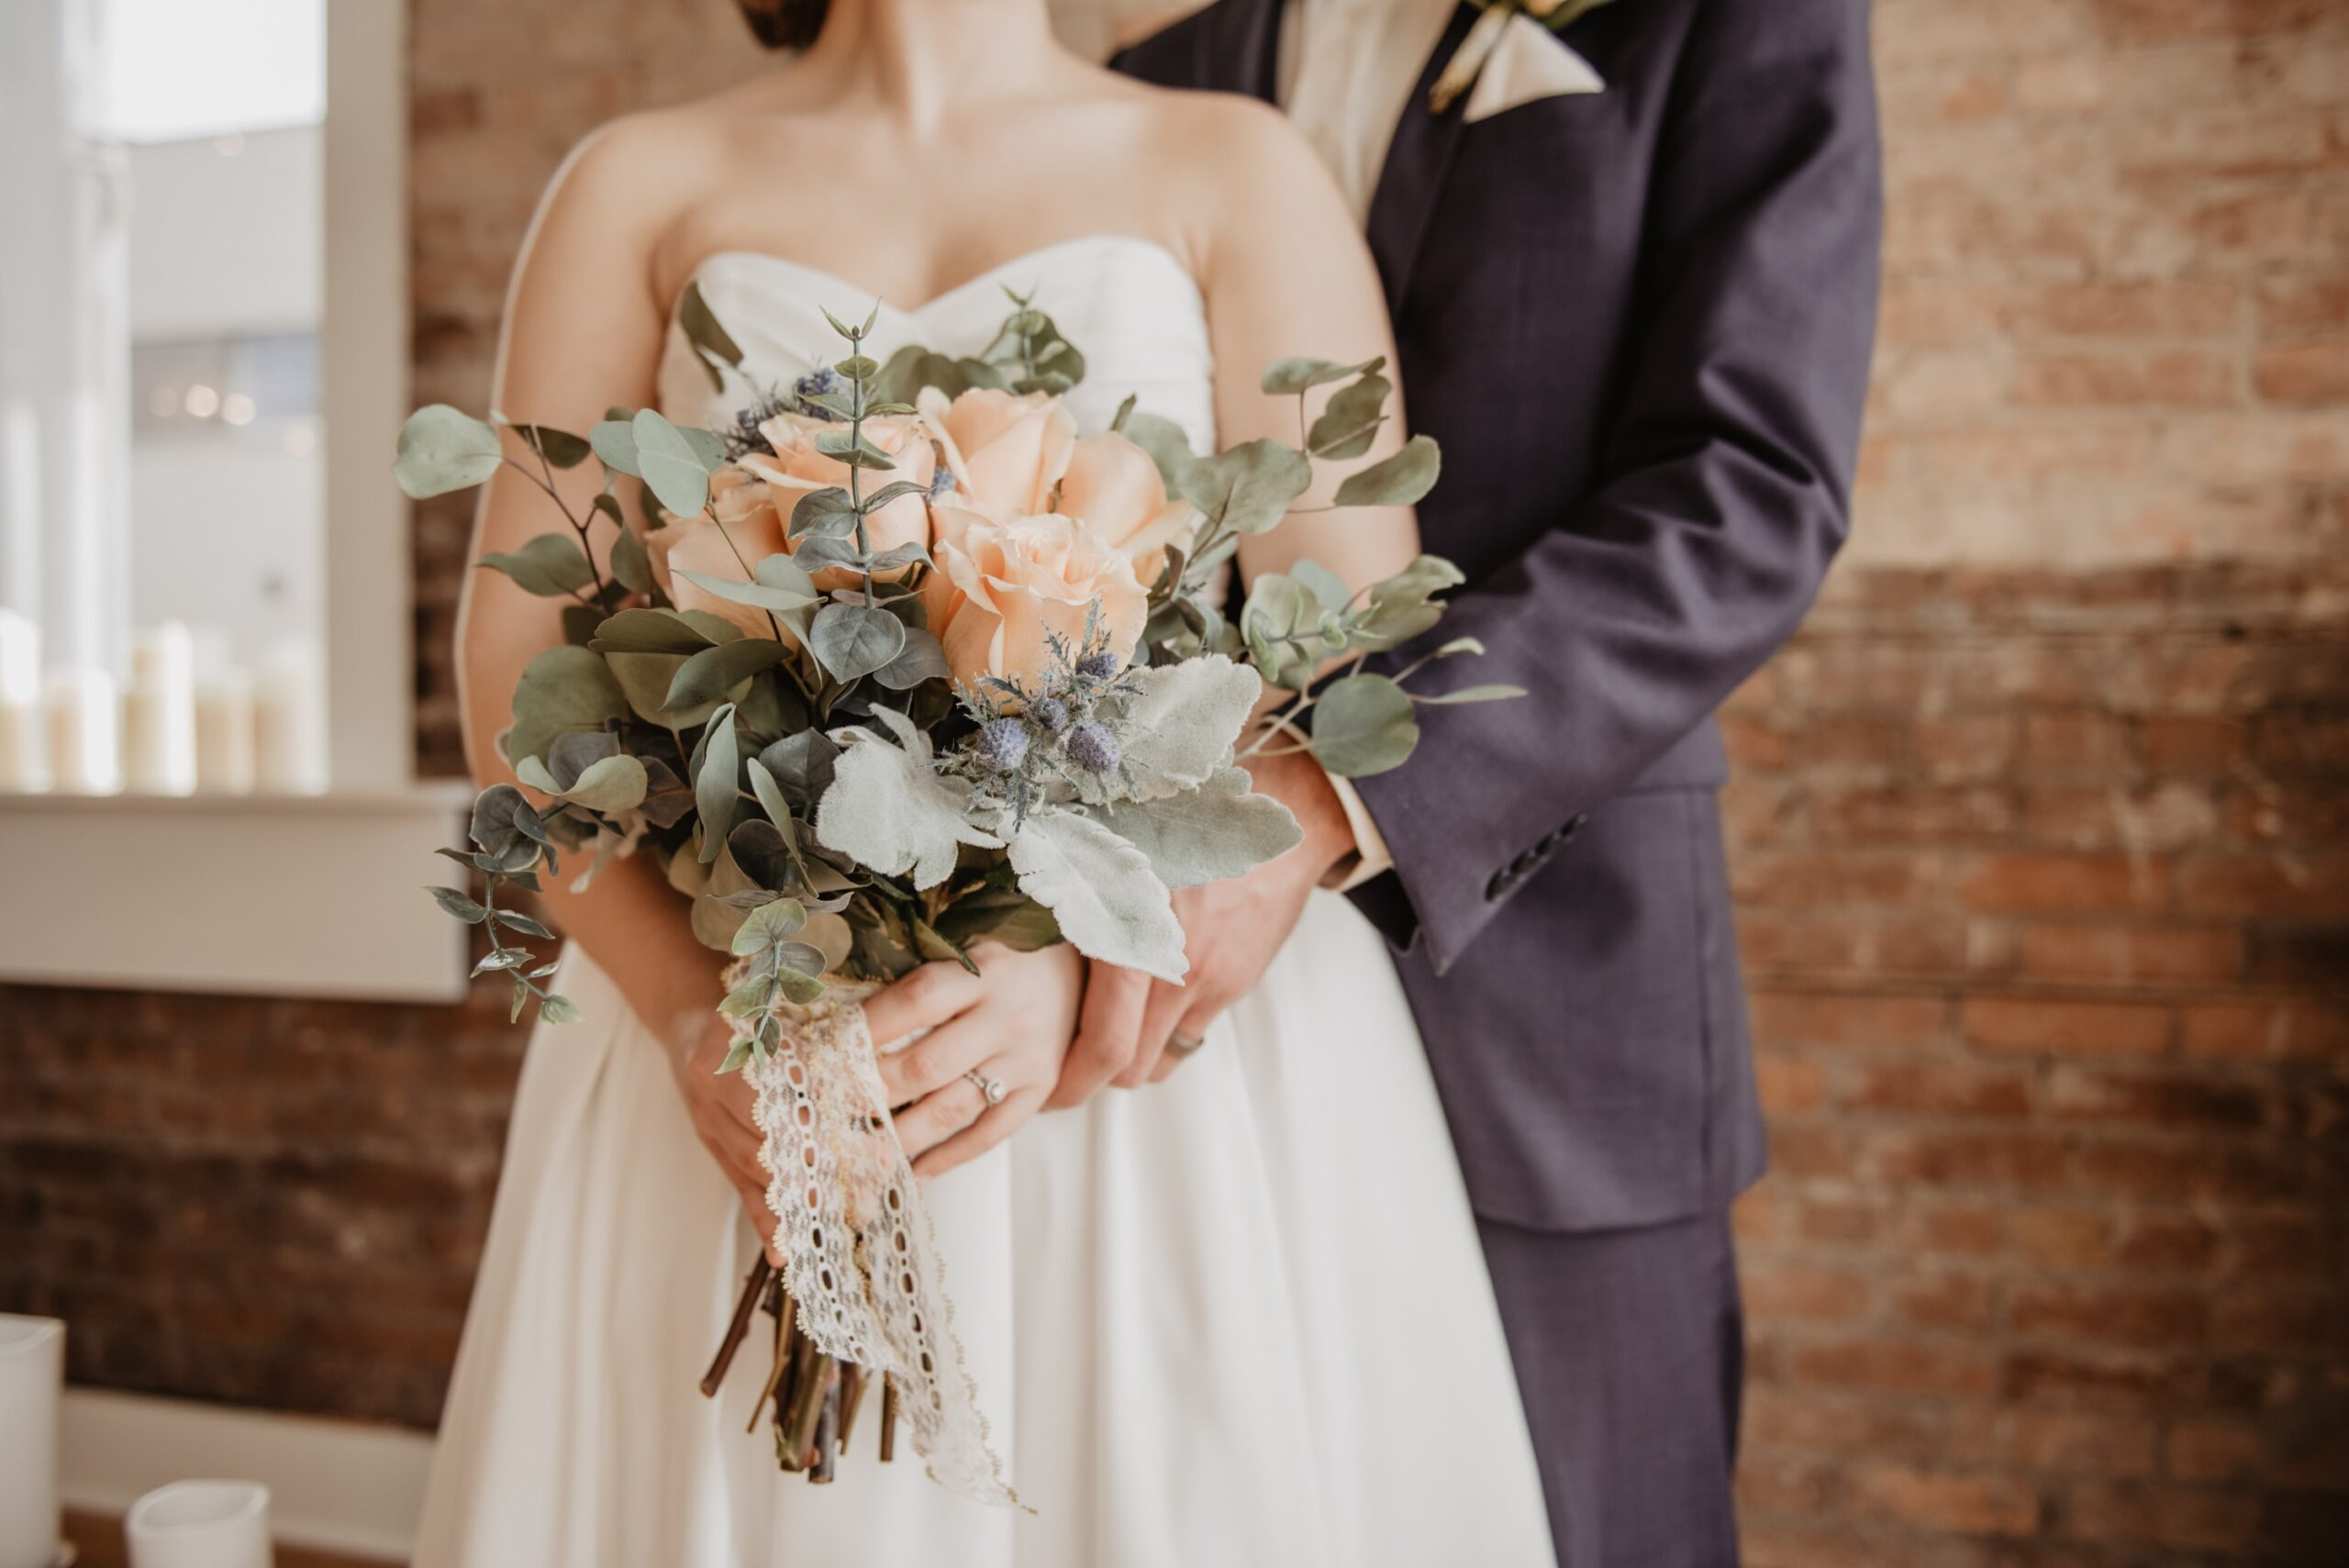 5 Intelligent Ways to Include Those Who You Can't Invite to the Wedding